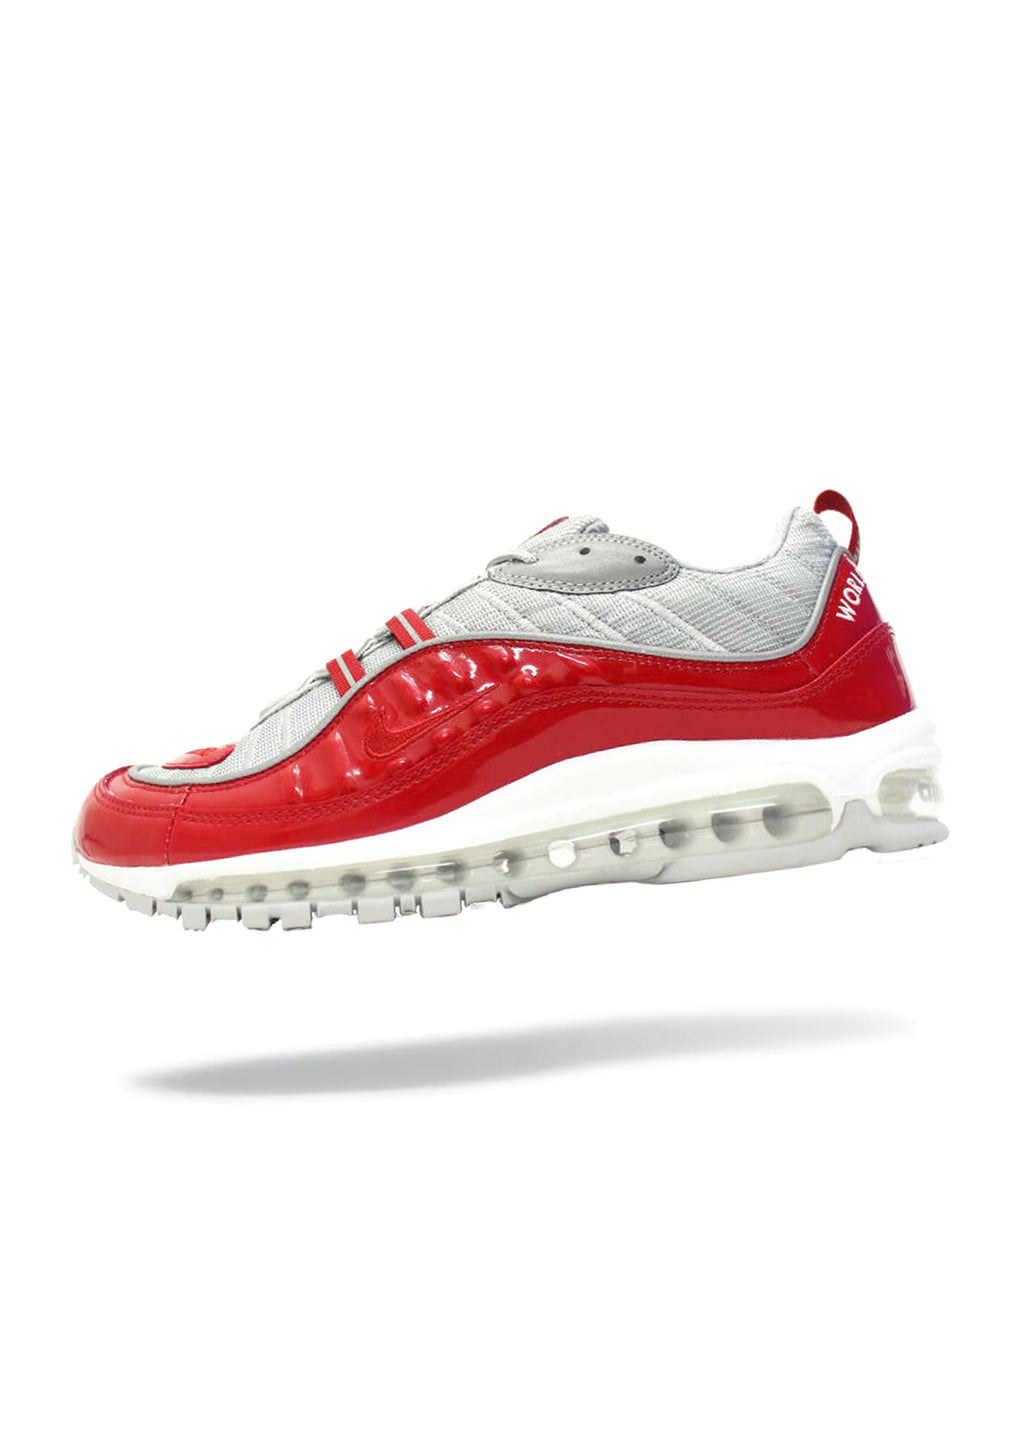 Air Max 98 Supreme Varsity Red